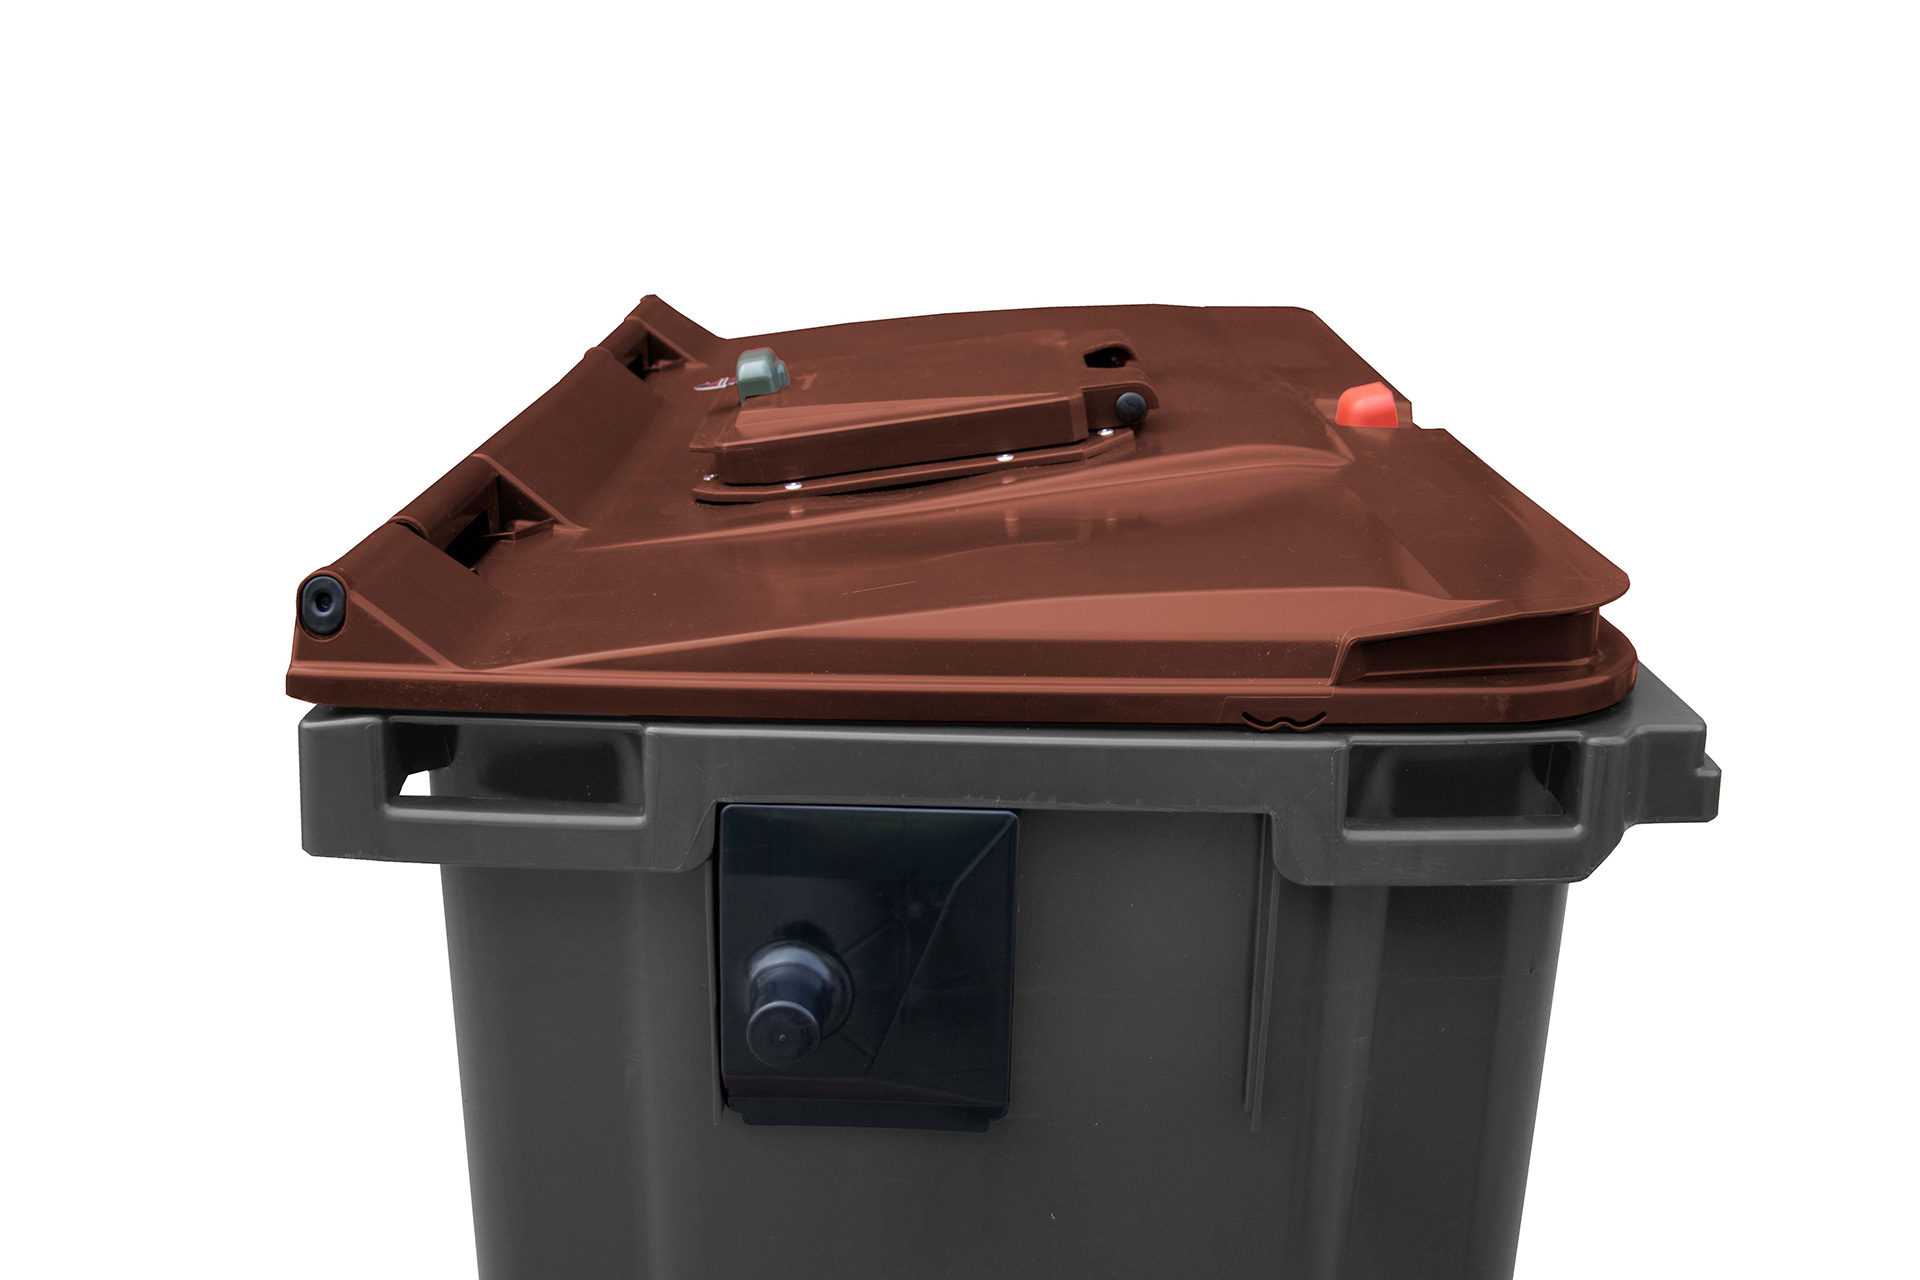 Lid in lid with manual lock